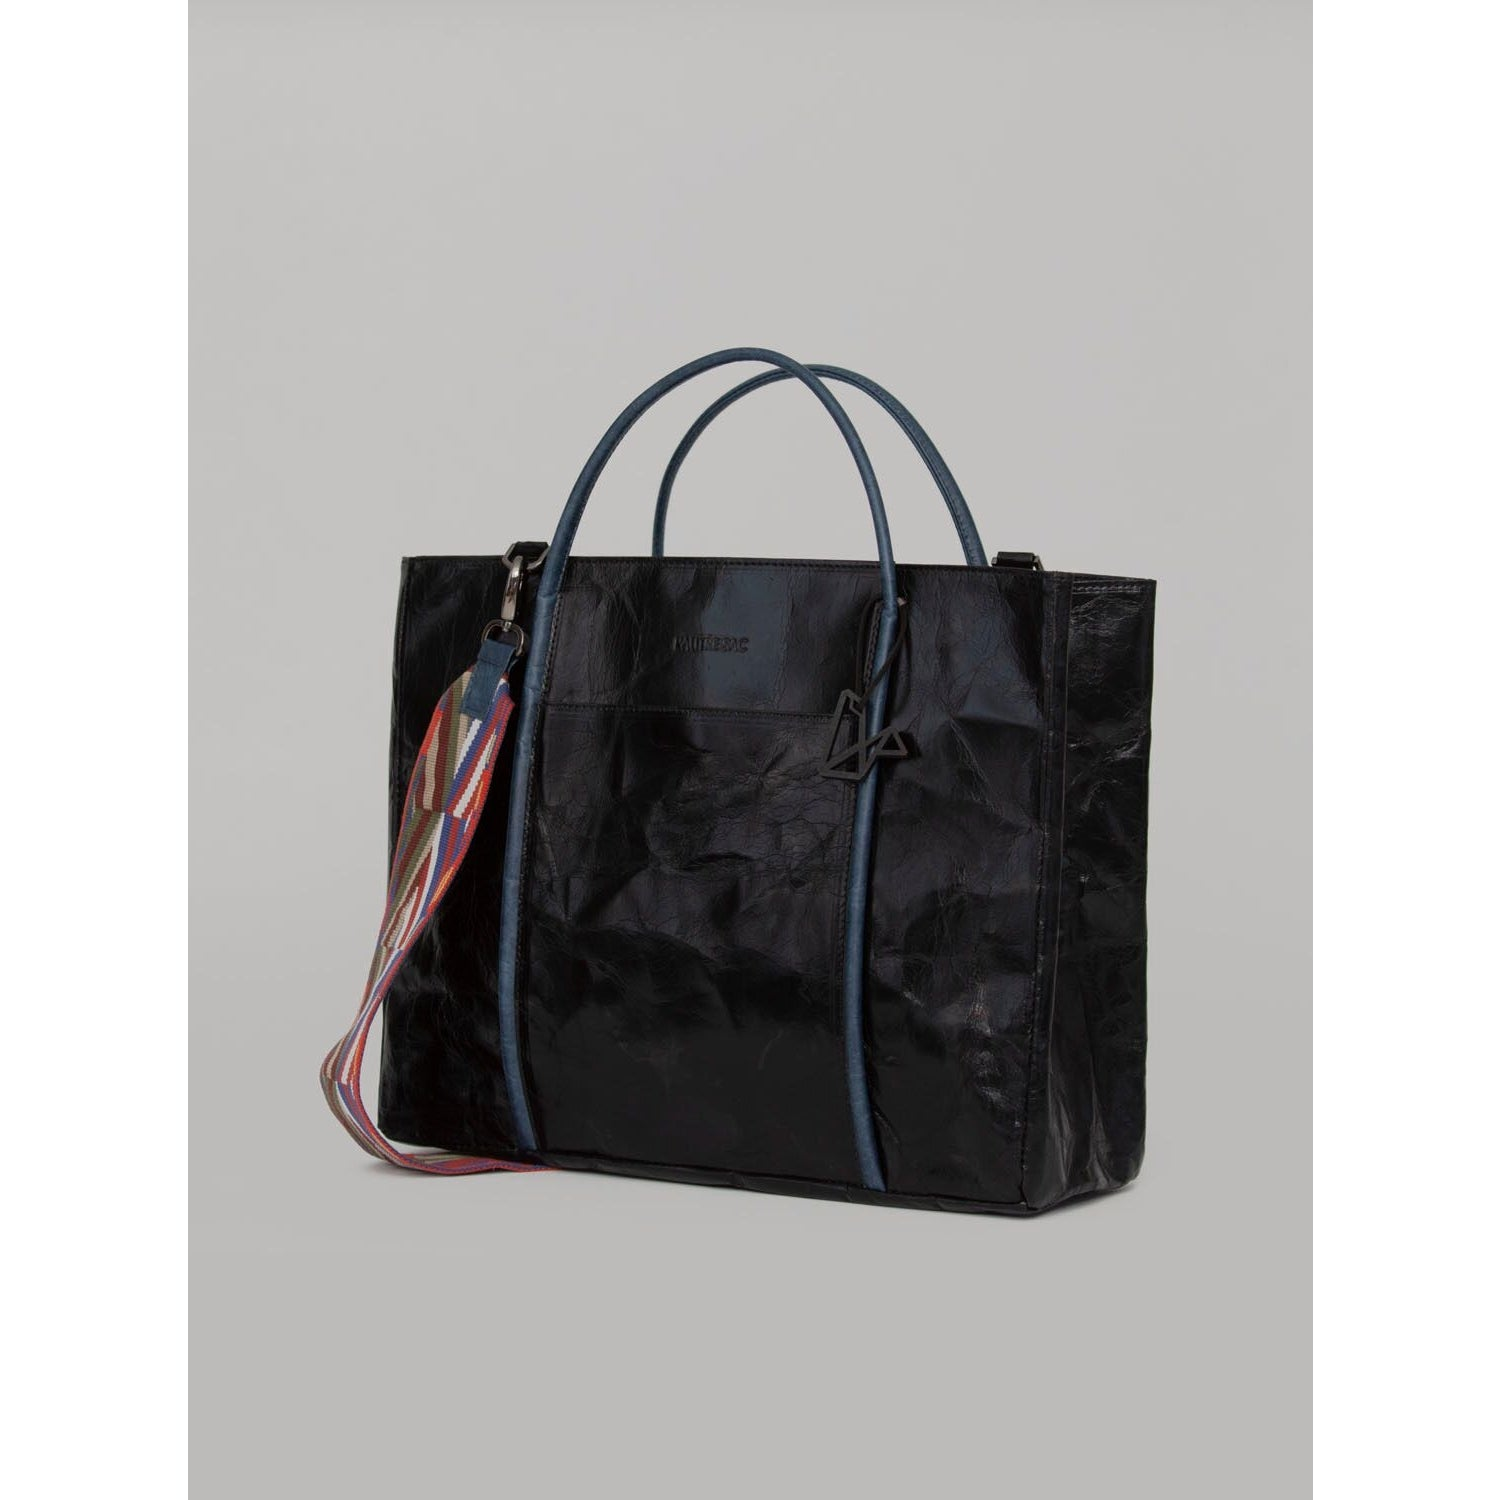 Virginia Black Shopper Bag